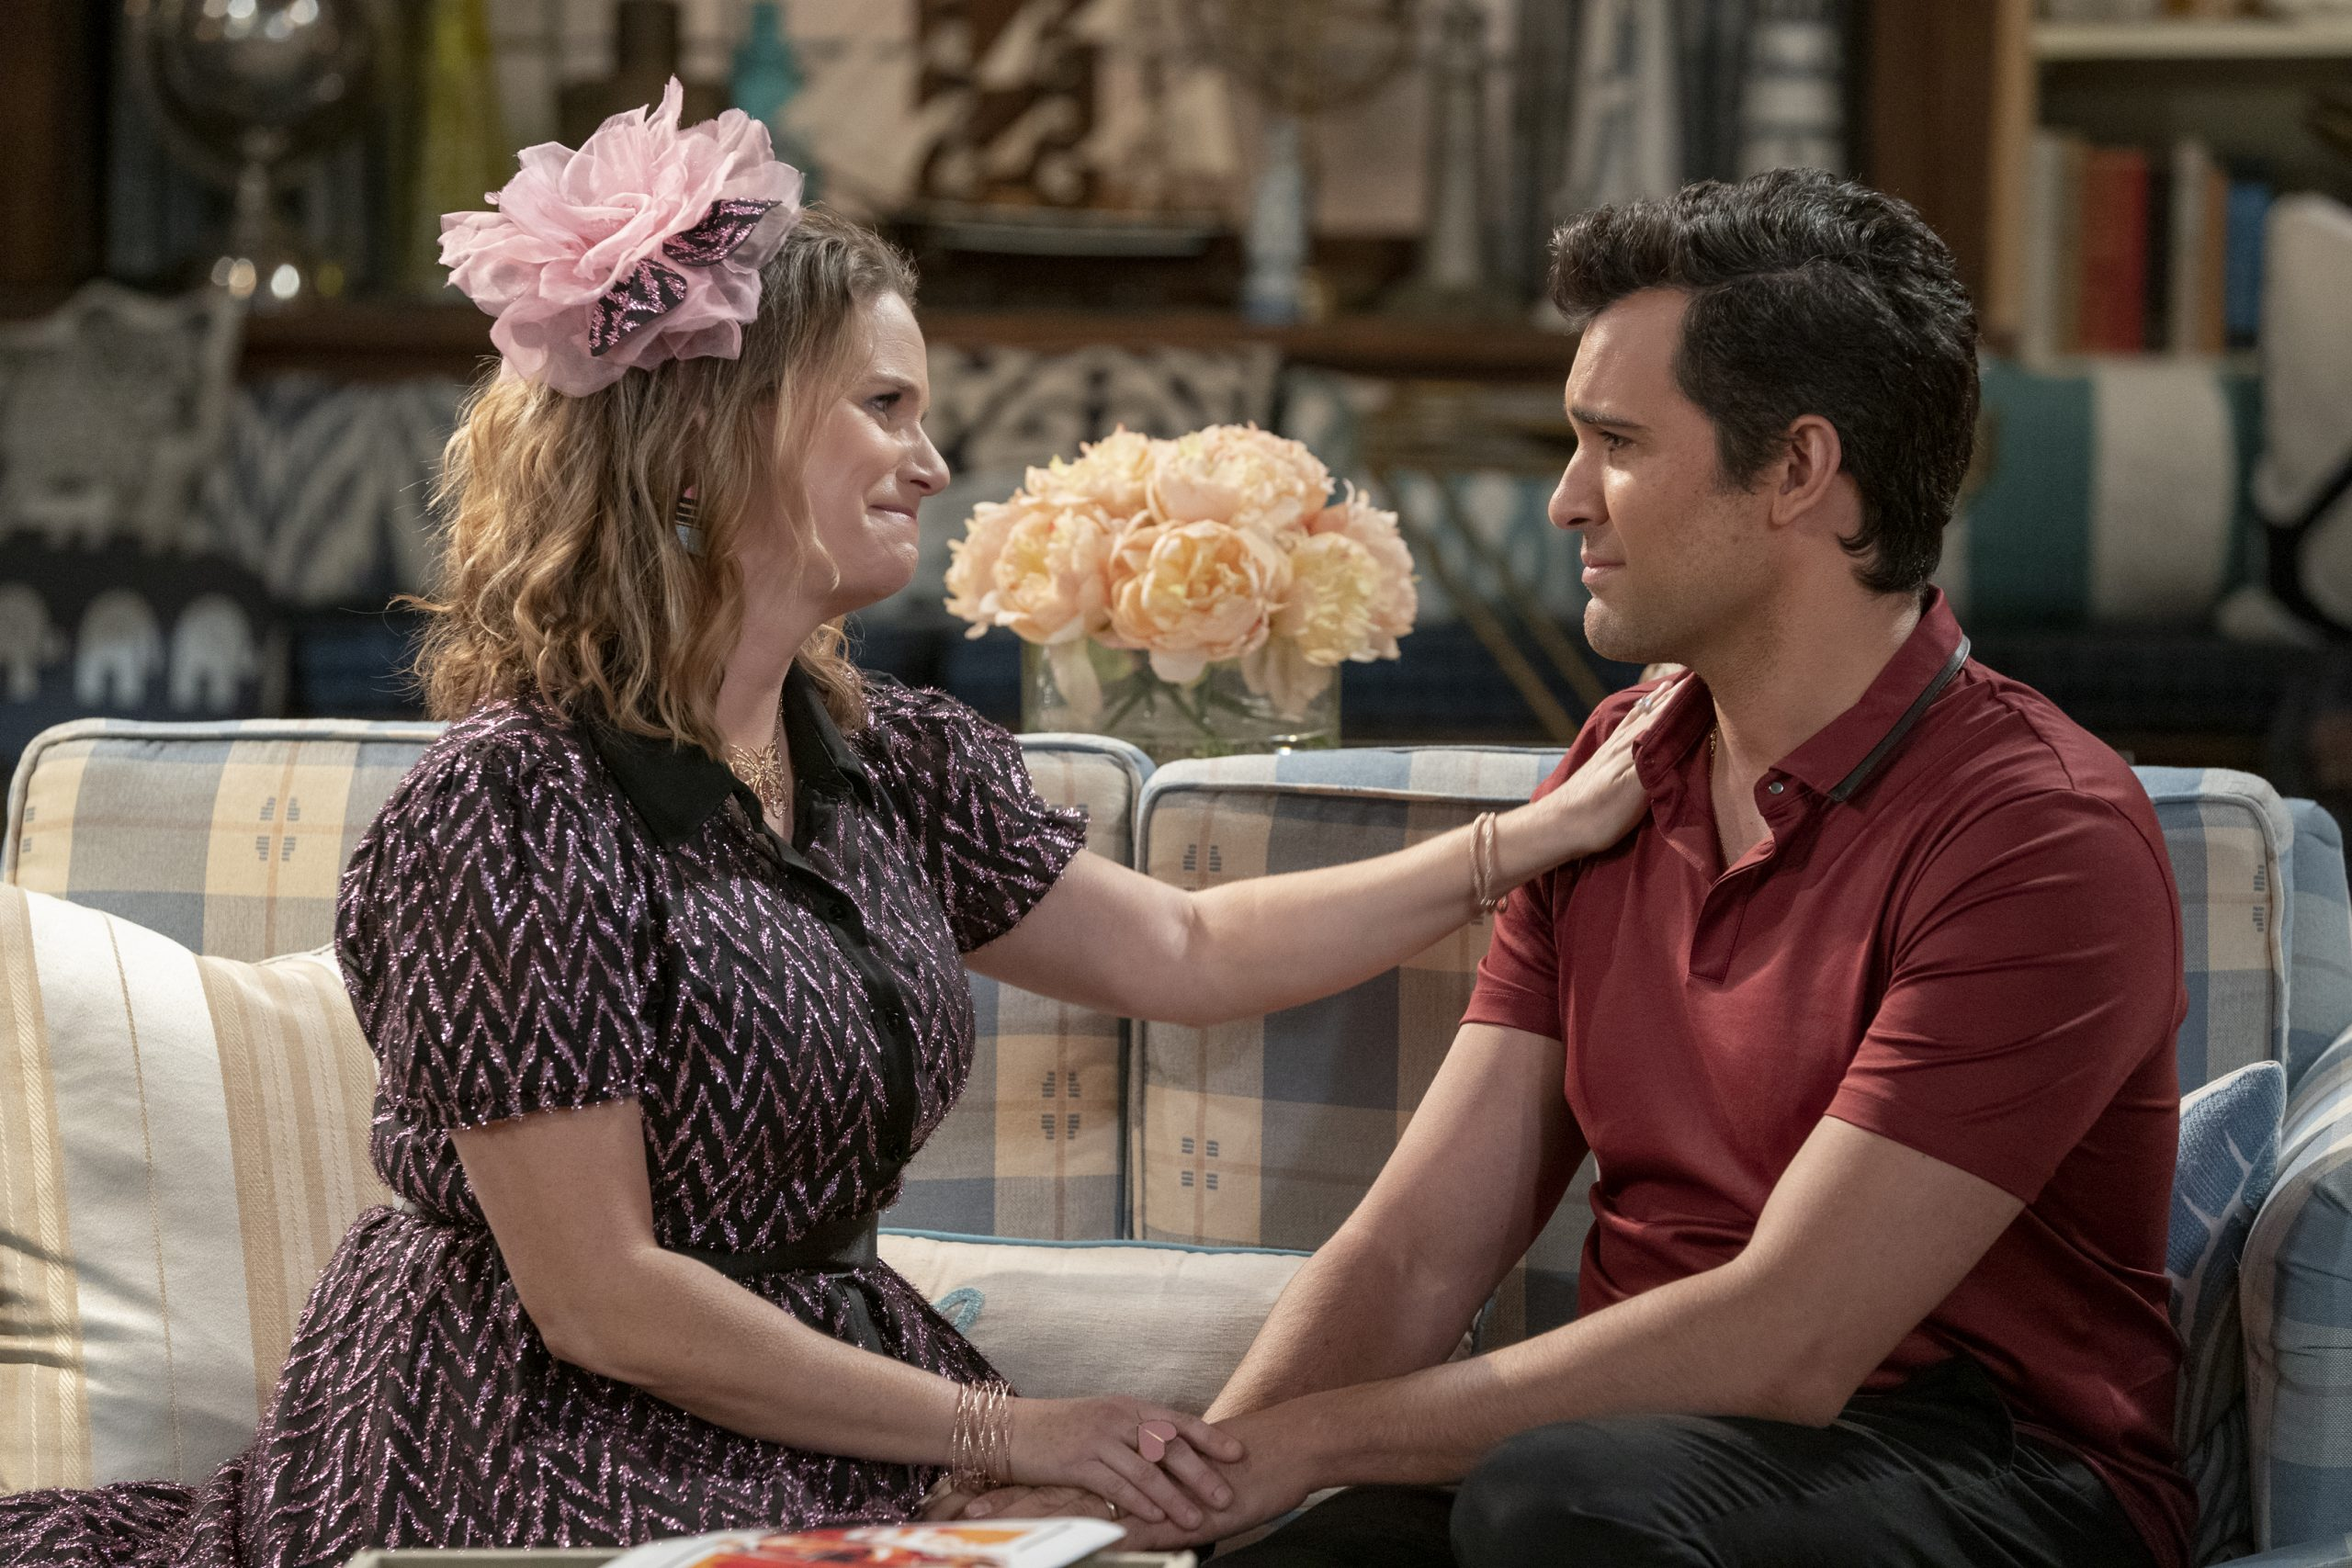 Fuller House Season 5 Episode 16 recap